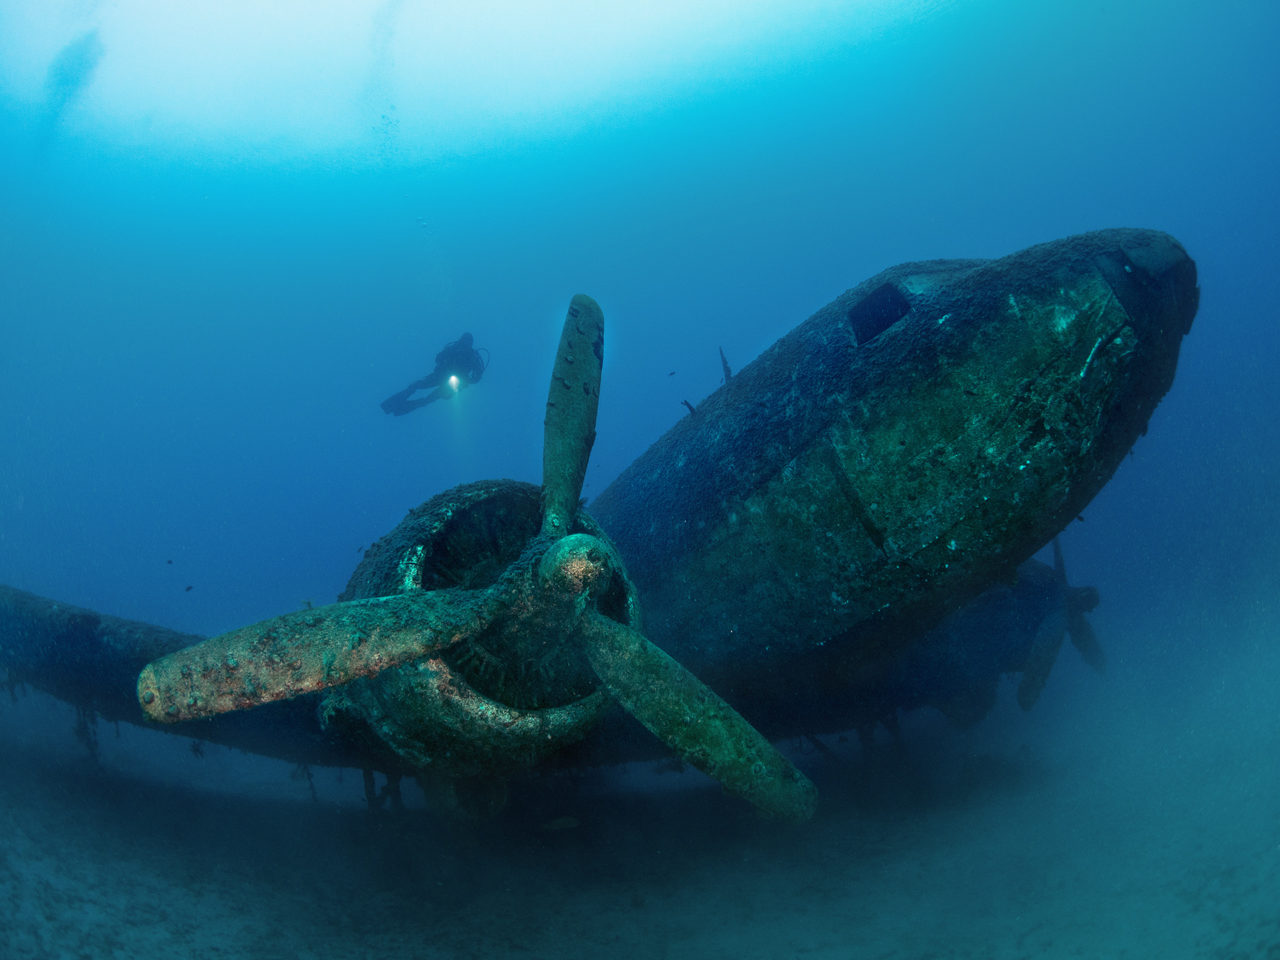 Propeller, Aircraft DC-3 Douglas, flooded in Turkey